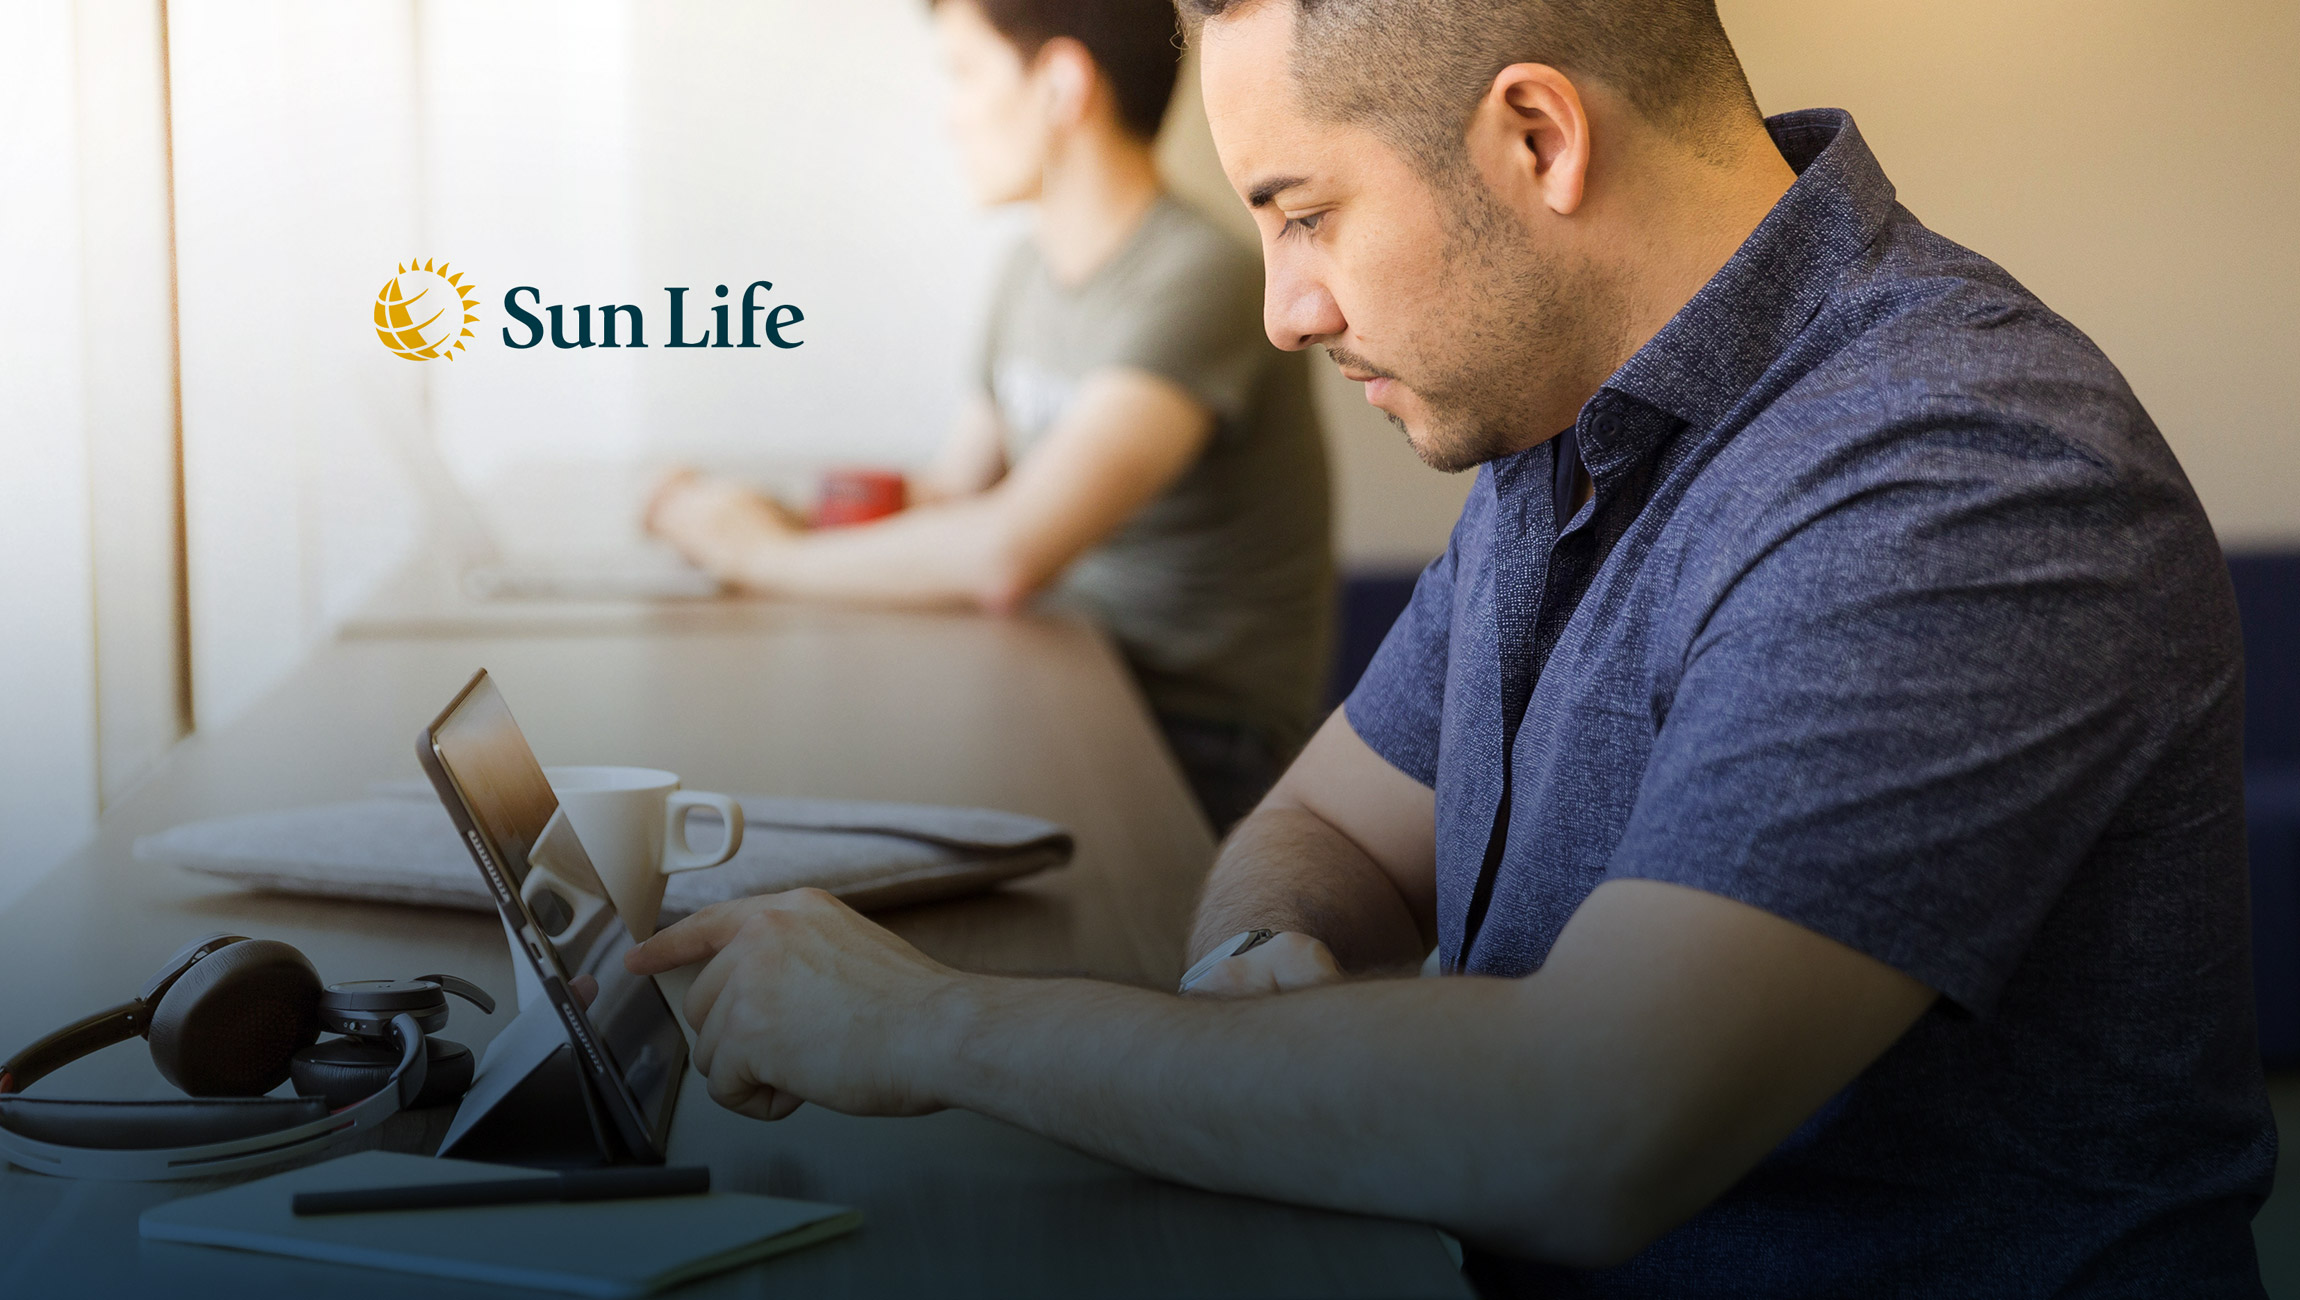 Sun Life U.S. Creates New Absence Management Solution, Using Employer and Employee Feedback to Make Absence Easier